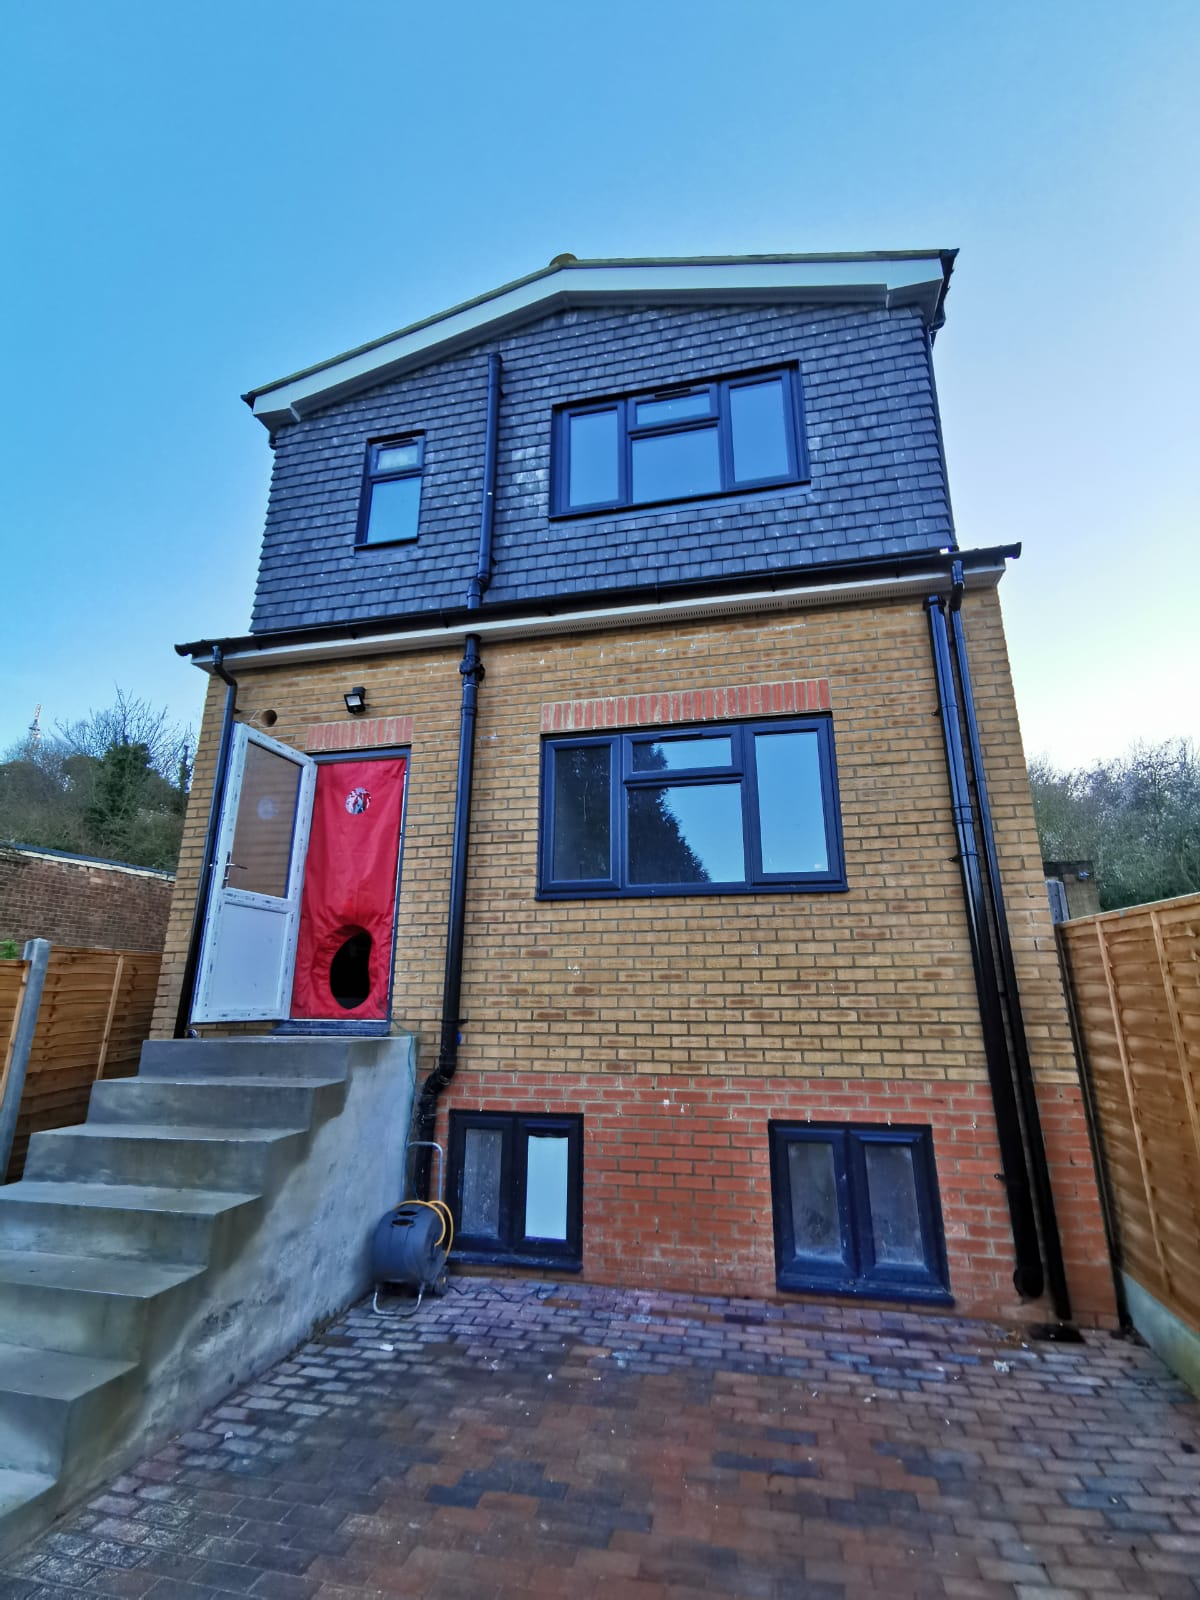 Mulberry Close, Luton, Bedfordshire, LU1